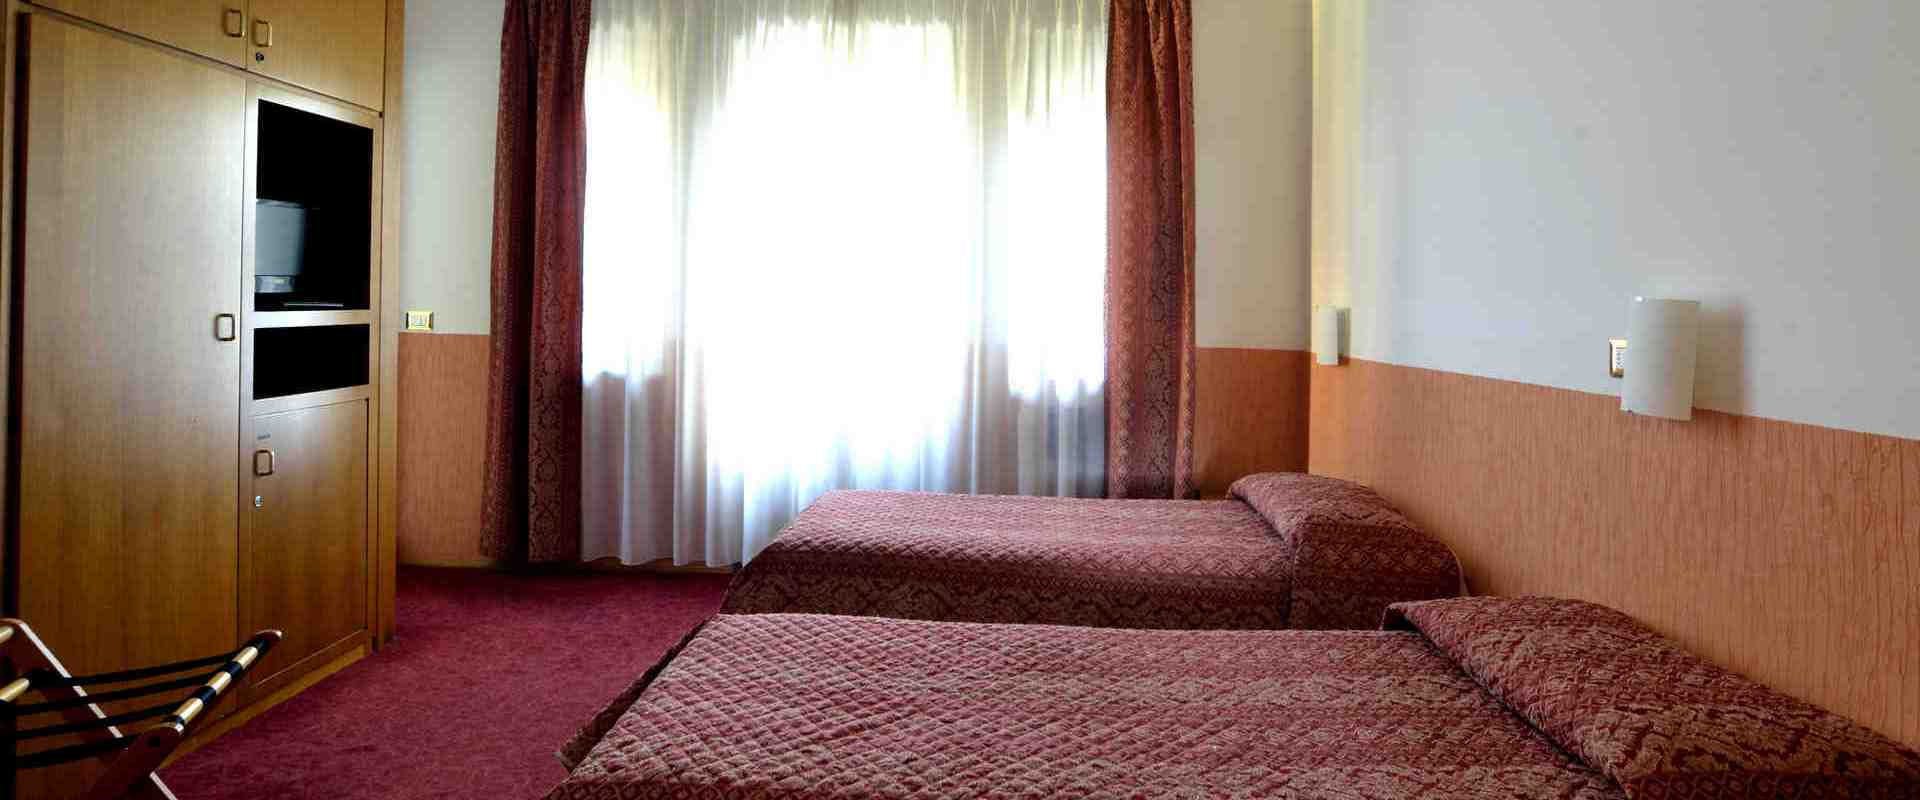 Double Room Hotel Alla Bianca Near Venice